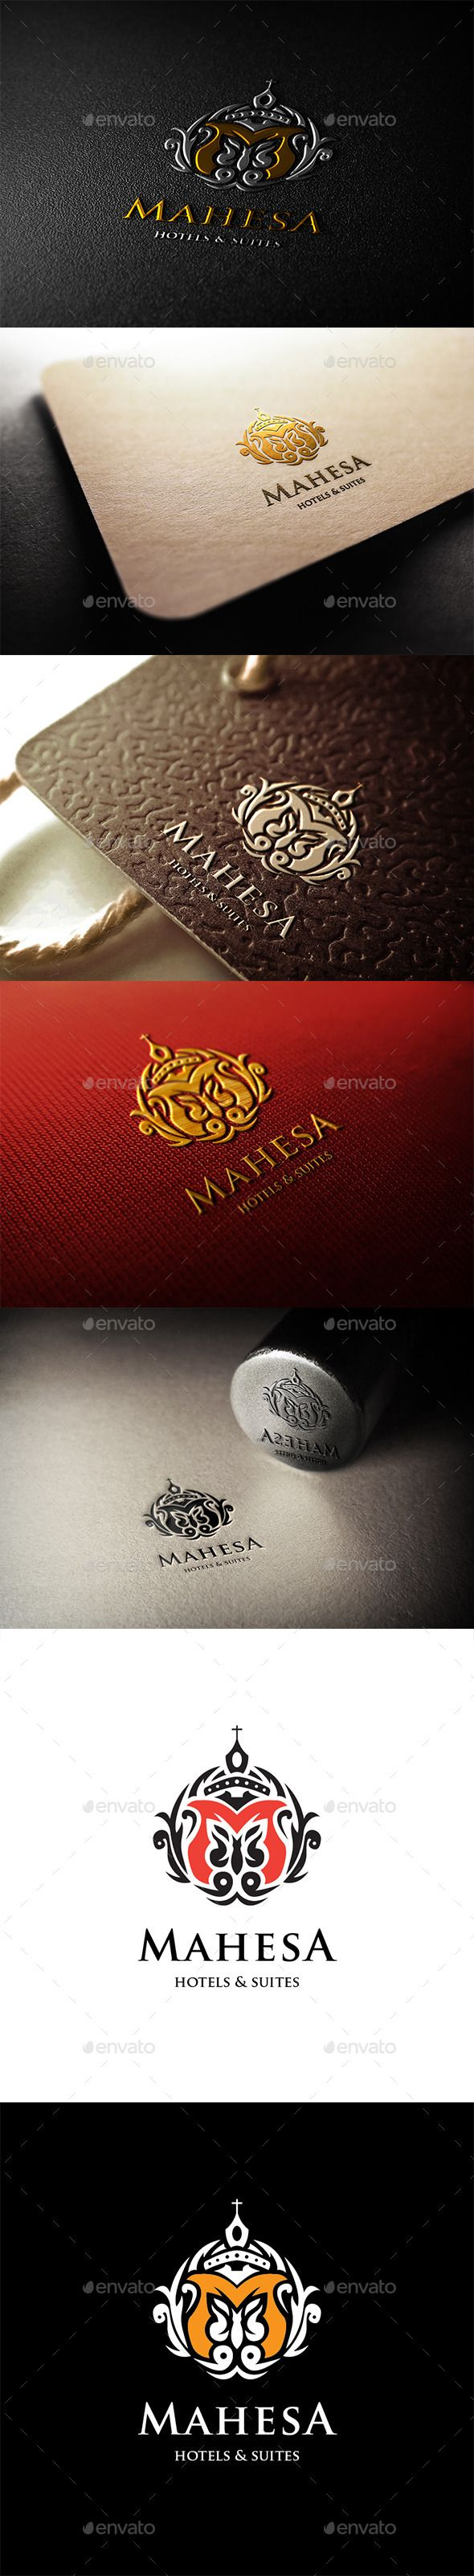 Mahesa Hotels Logo Template #design Download: http://graphicriver.net/item/mahesa-hotels-logo/11301561?ref=ksioks